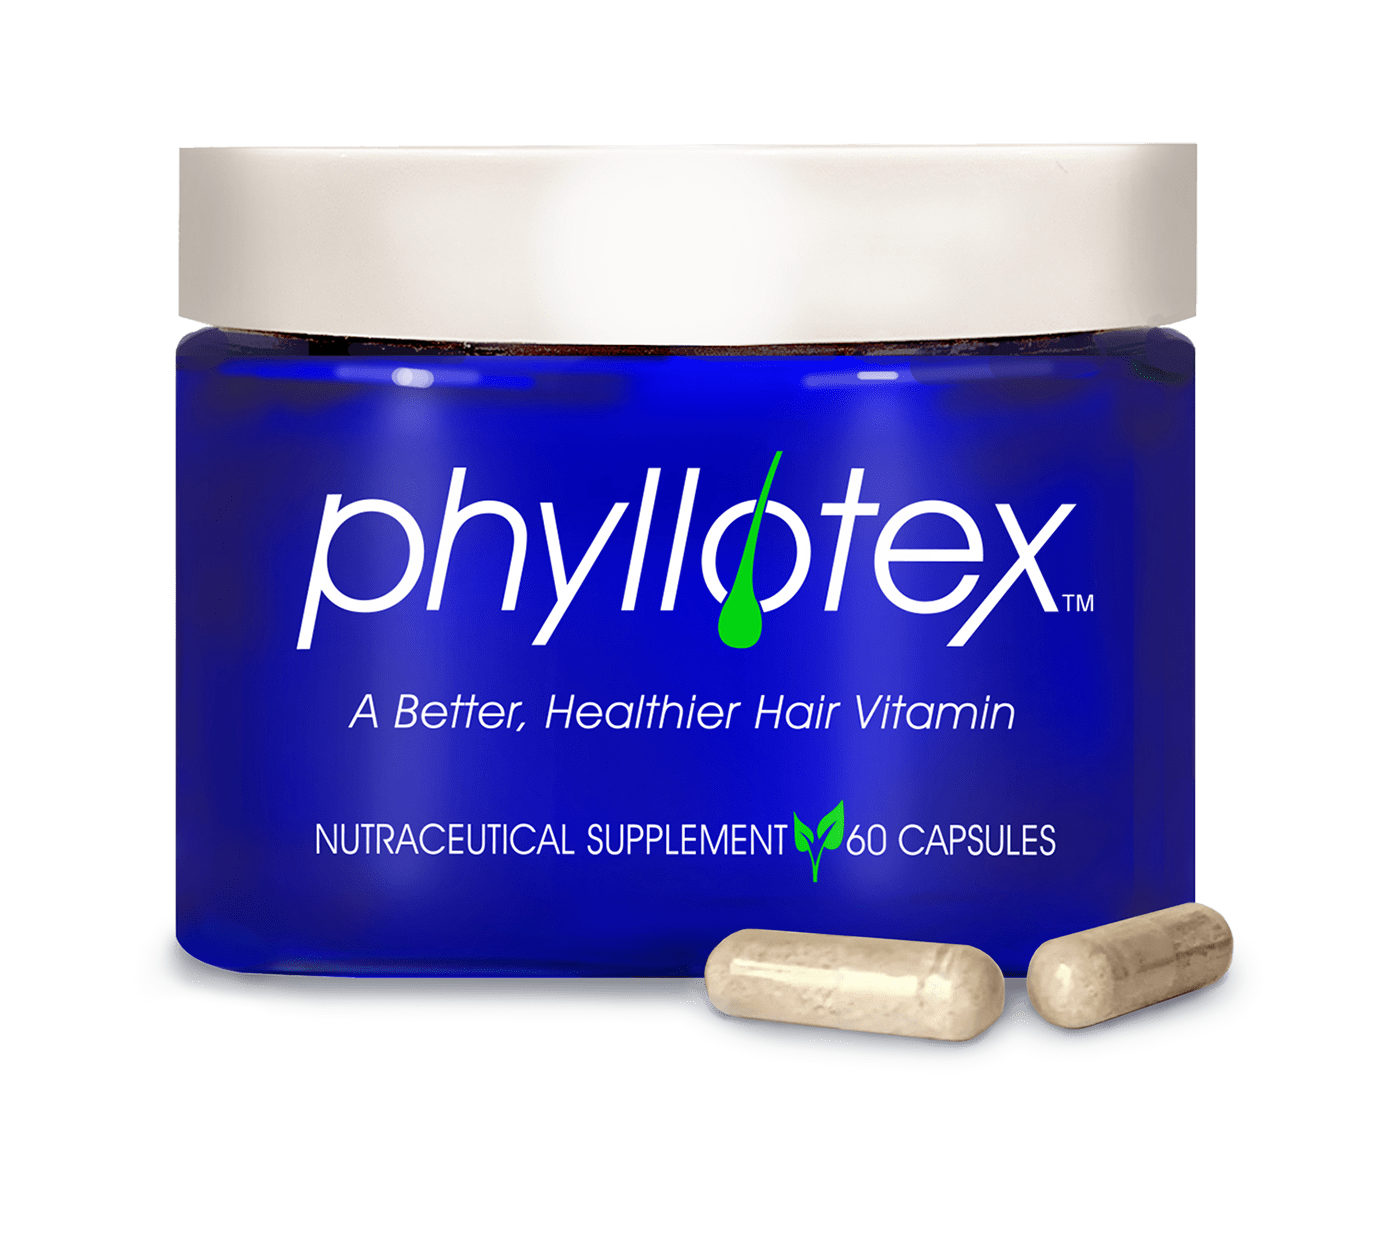 Phyllotex Jar with 2 capsules